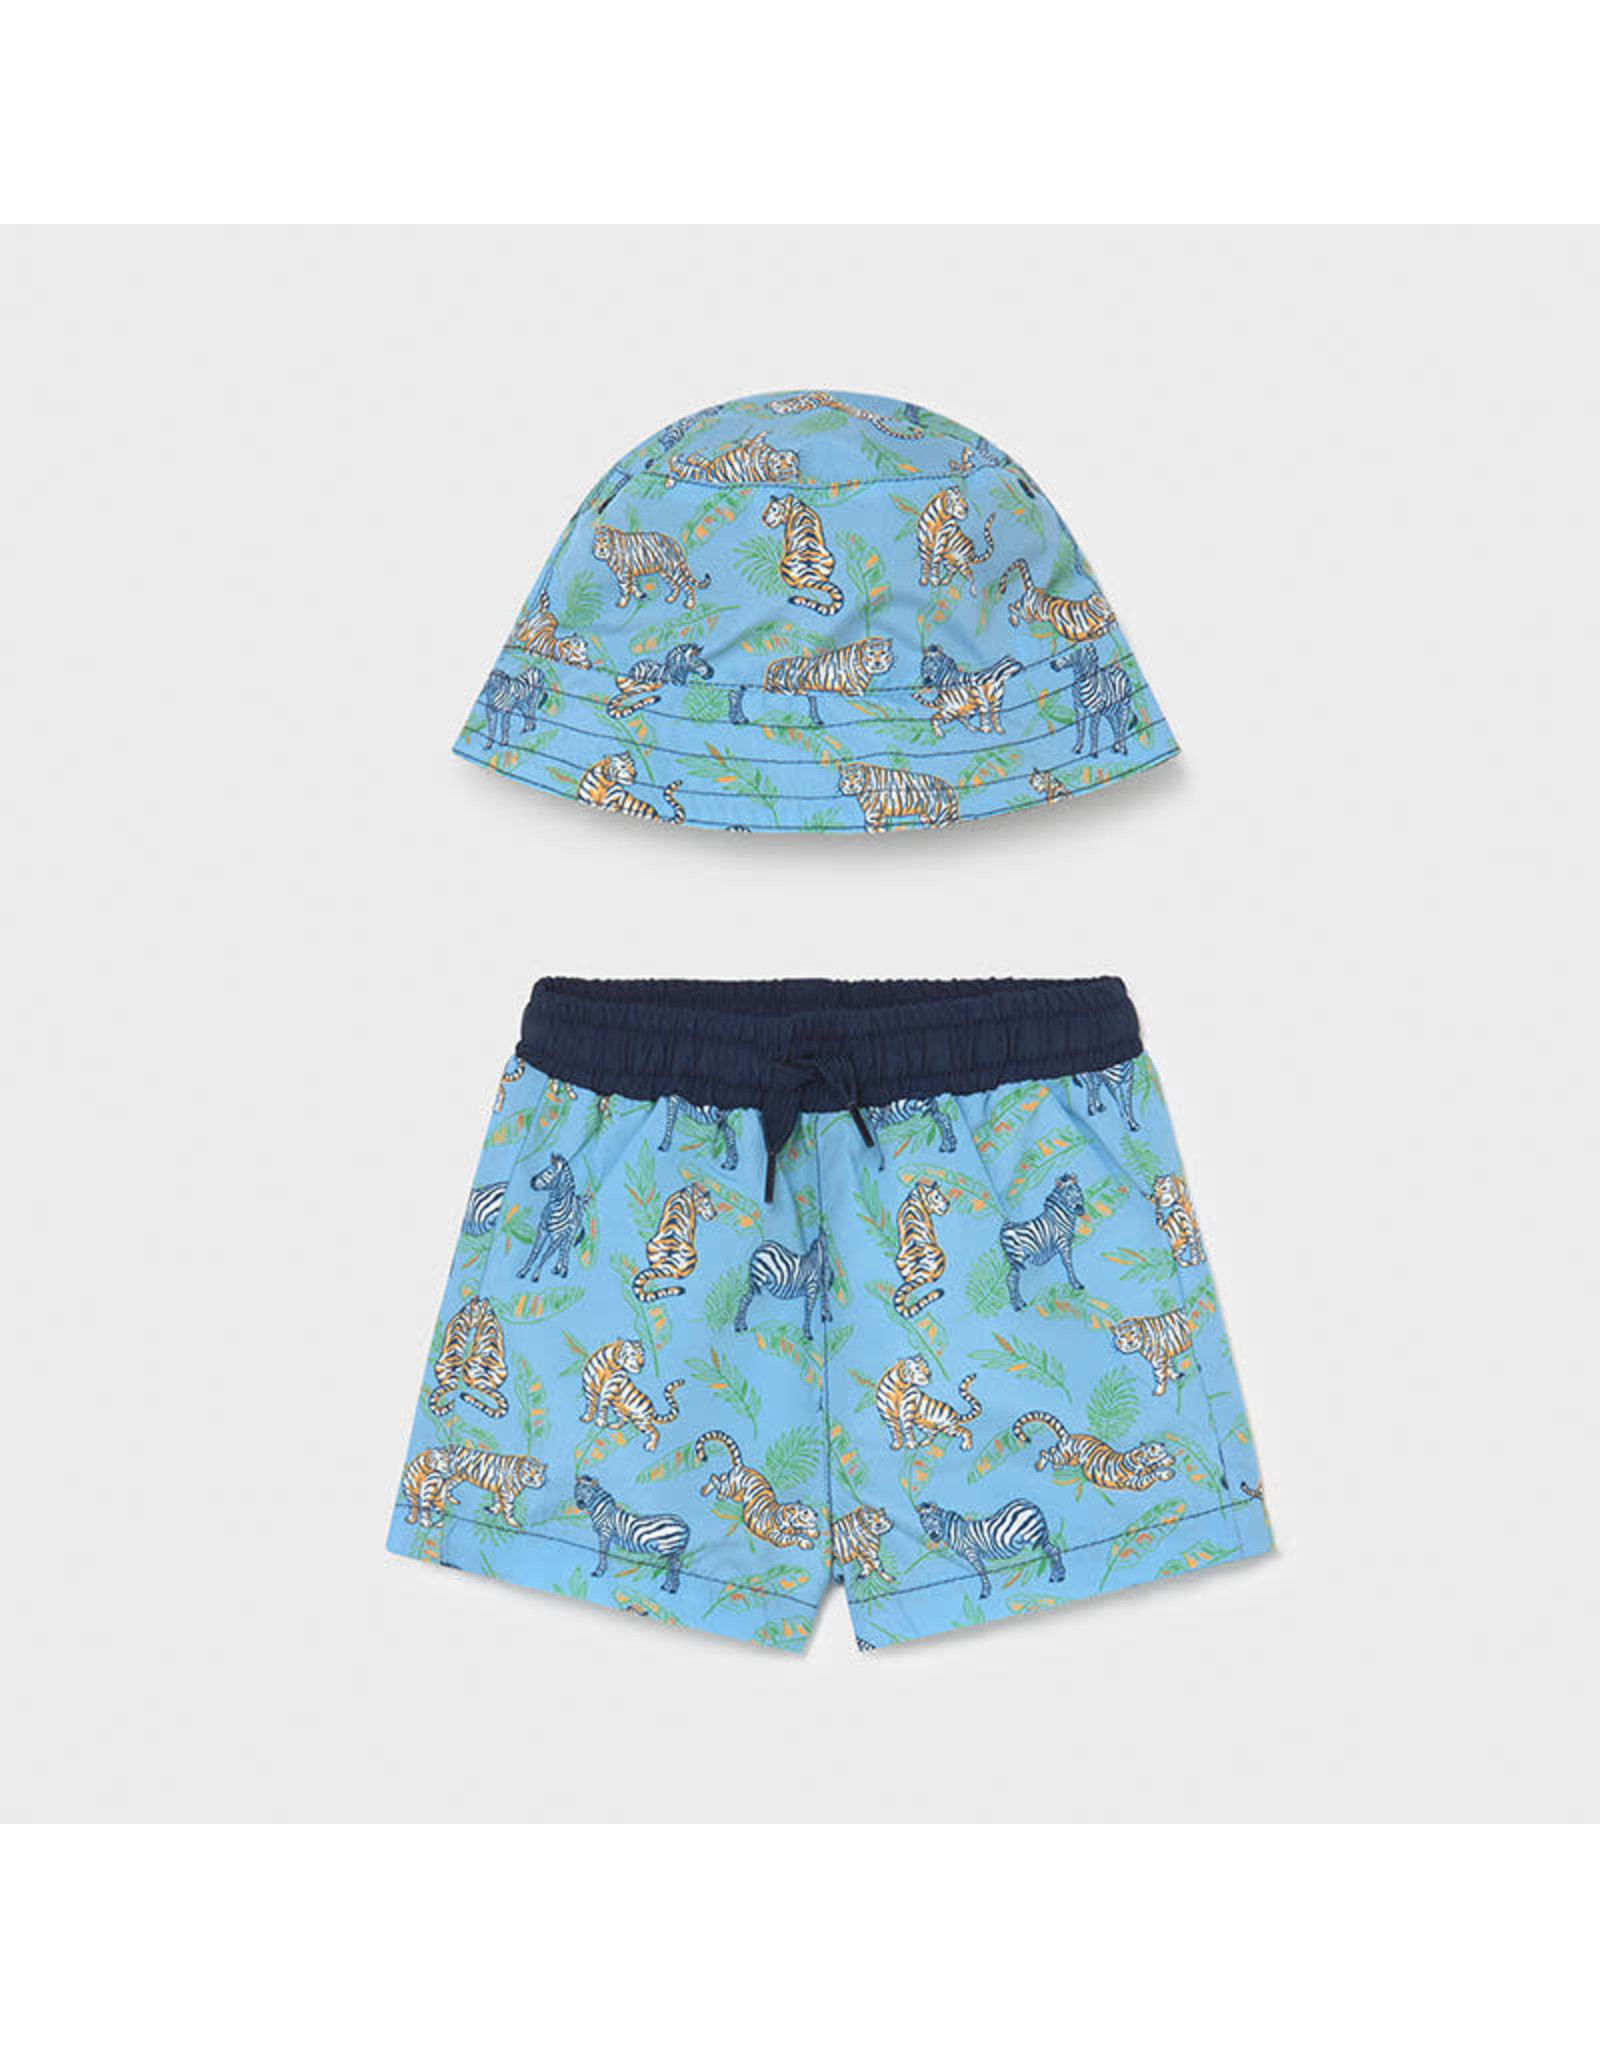 Mayoral Bathing Suit and Hat Set